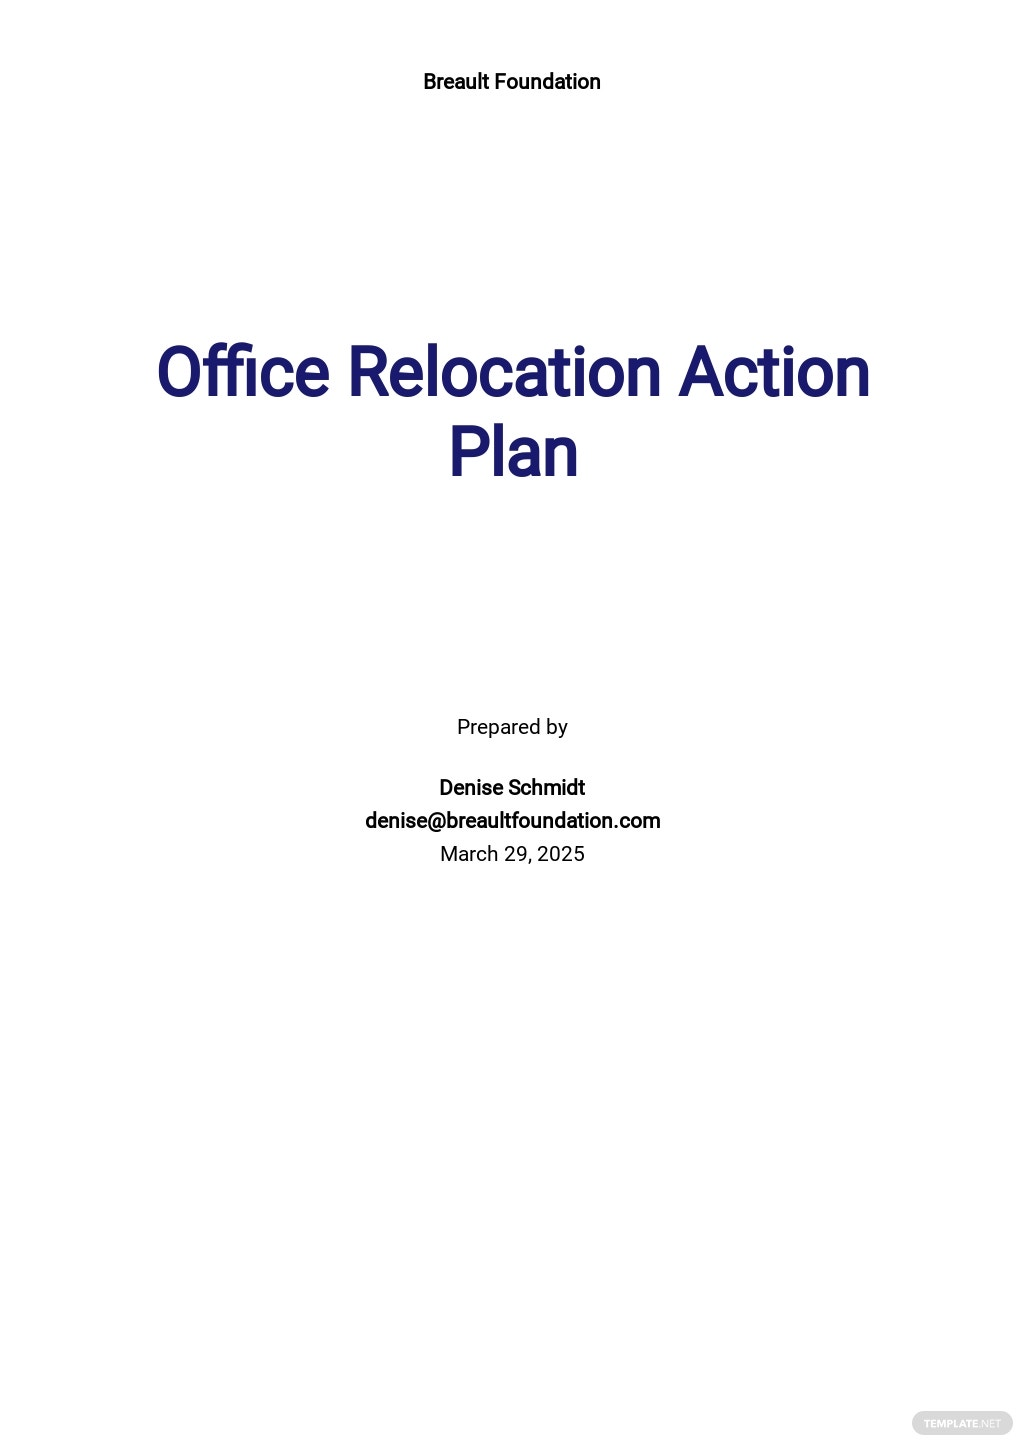 Office Relocation Action Plan Template.jpe